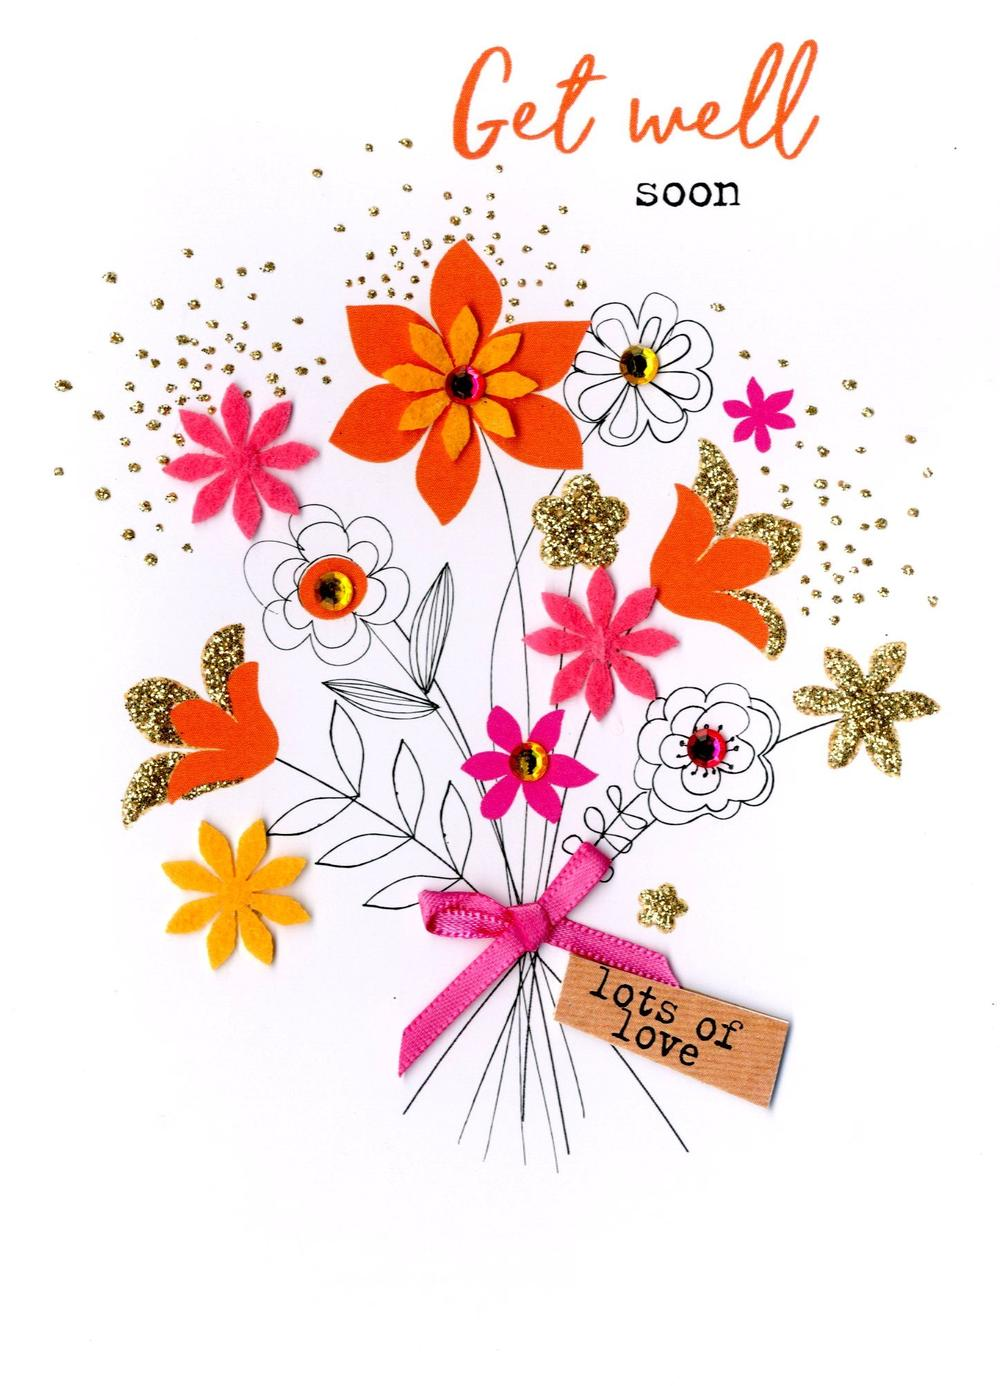 Get Well Soon Irresistible Greeting Card